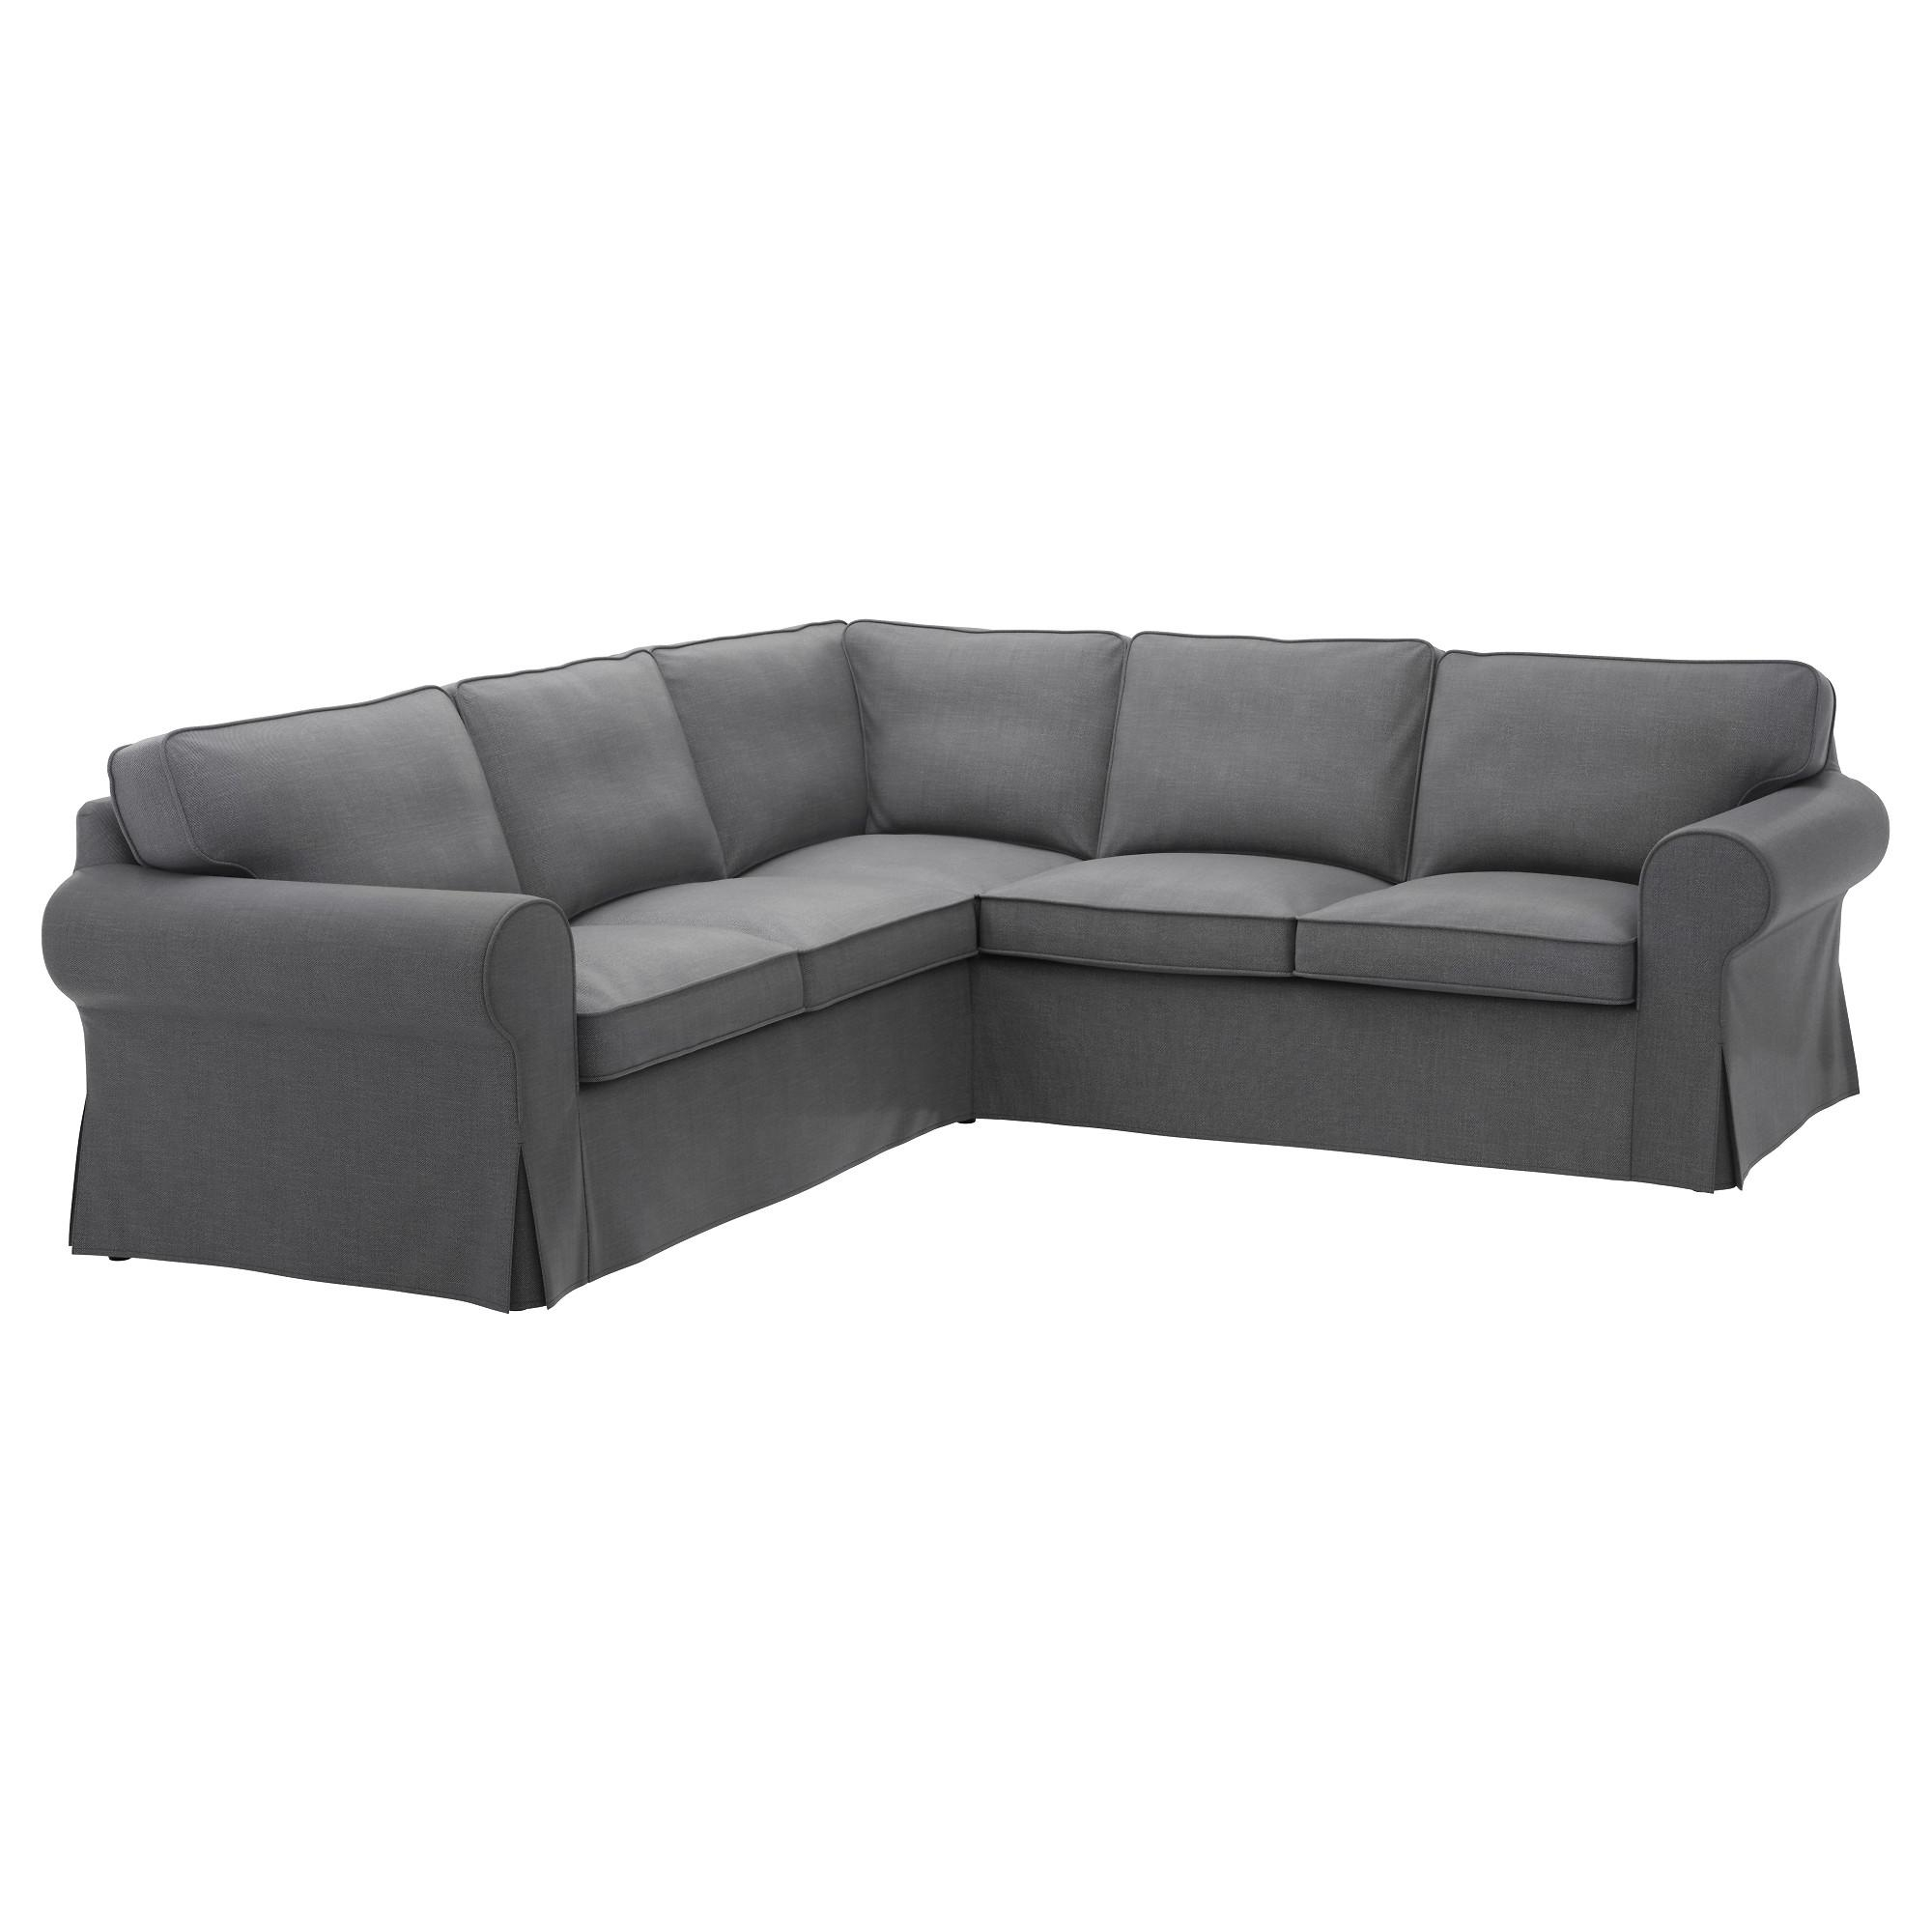 Fabric Sectional Sofas – Ikea With Regard To Mid Range Sofas (Image 10 of 20)